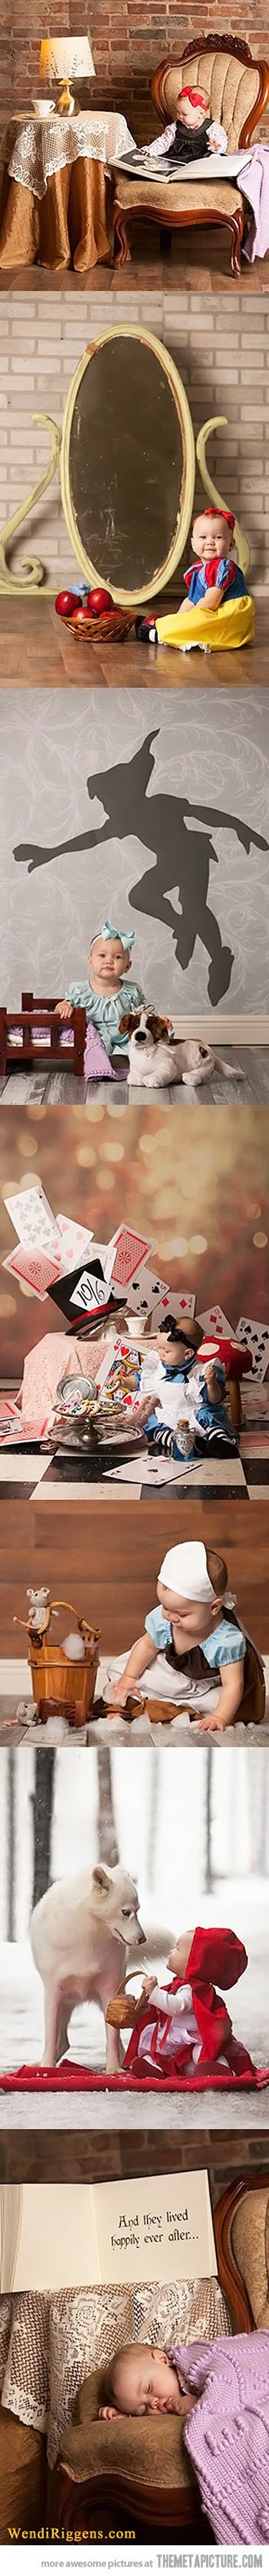 Fairytale Baby - Maybe a toddler/preschooler photo shoot